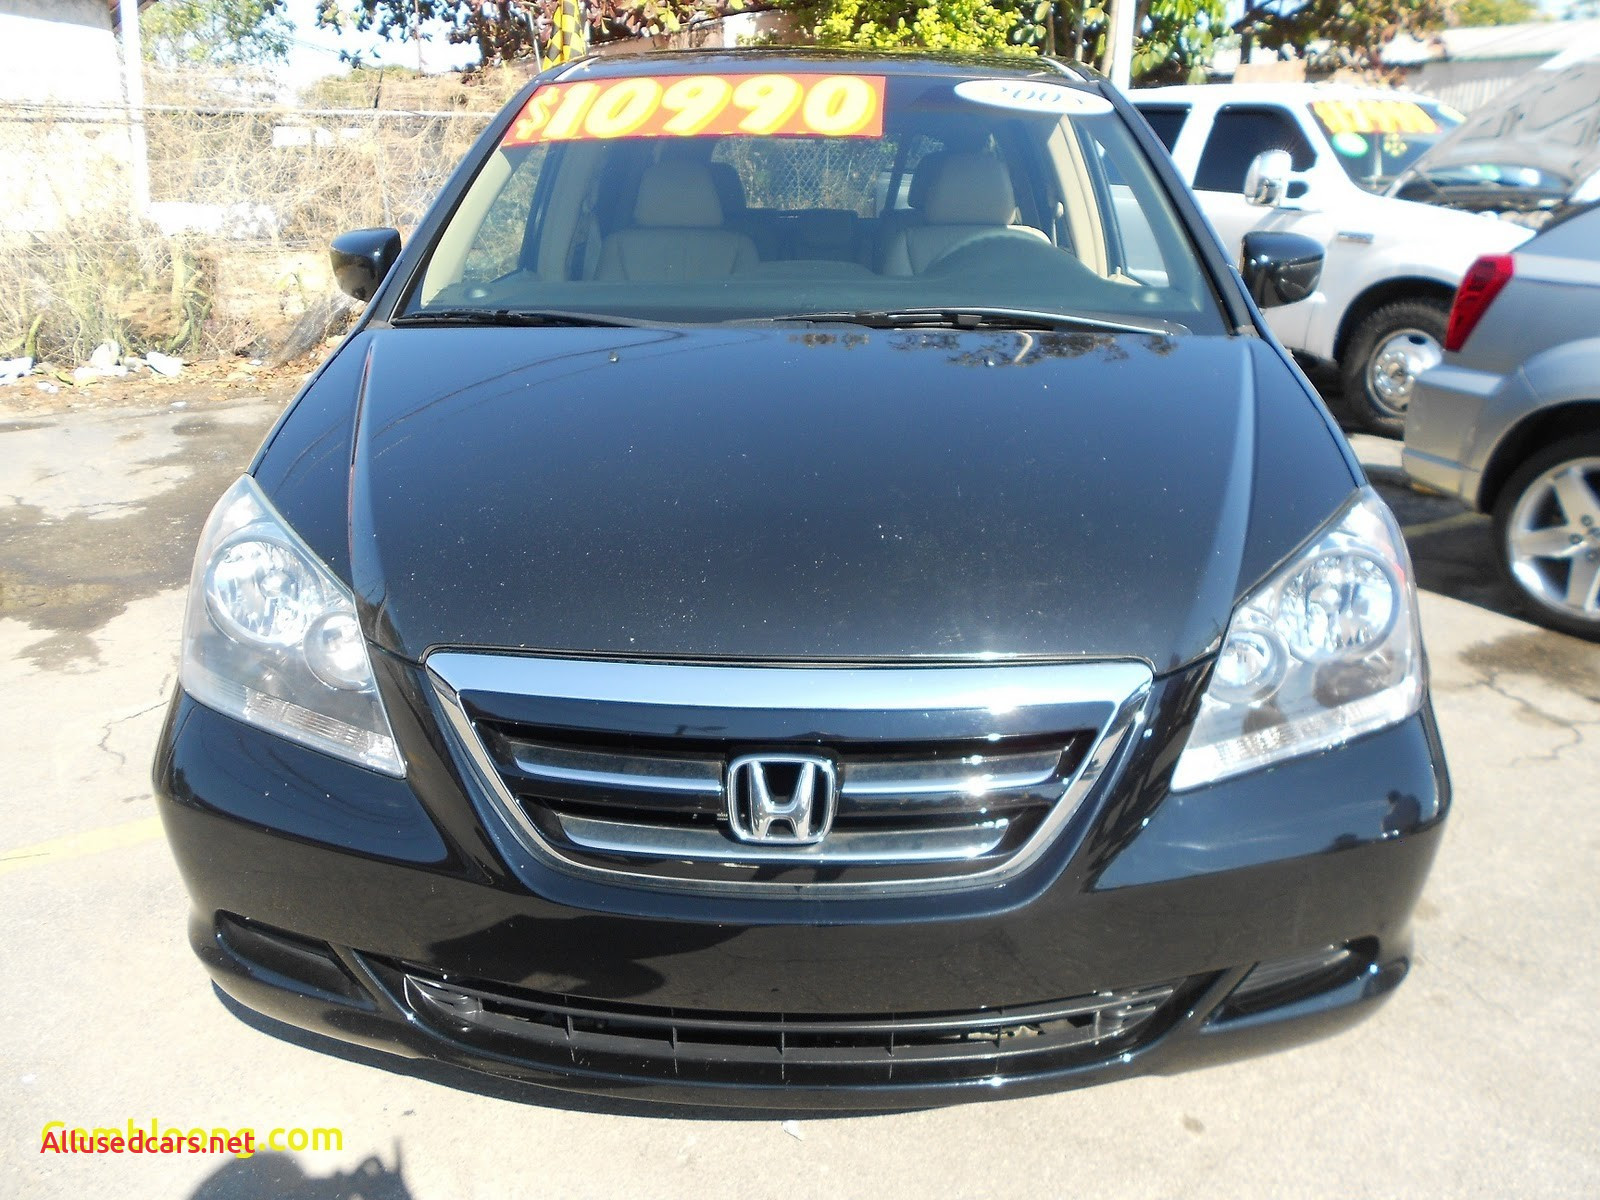 Awesome Repossessed Cars for Sale Near Me New Awesome Cheap Used Vehicles for Sale Near Me